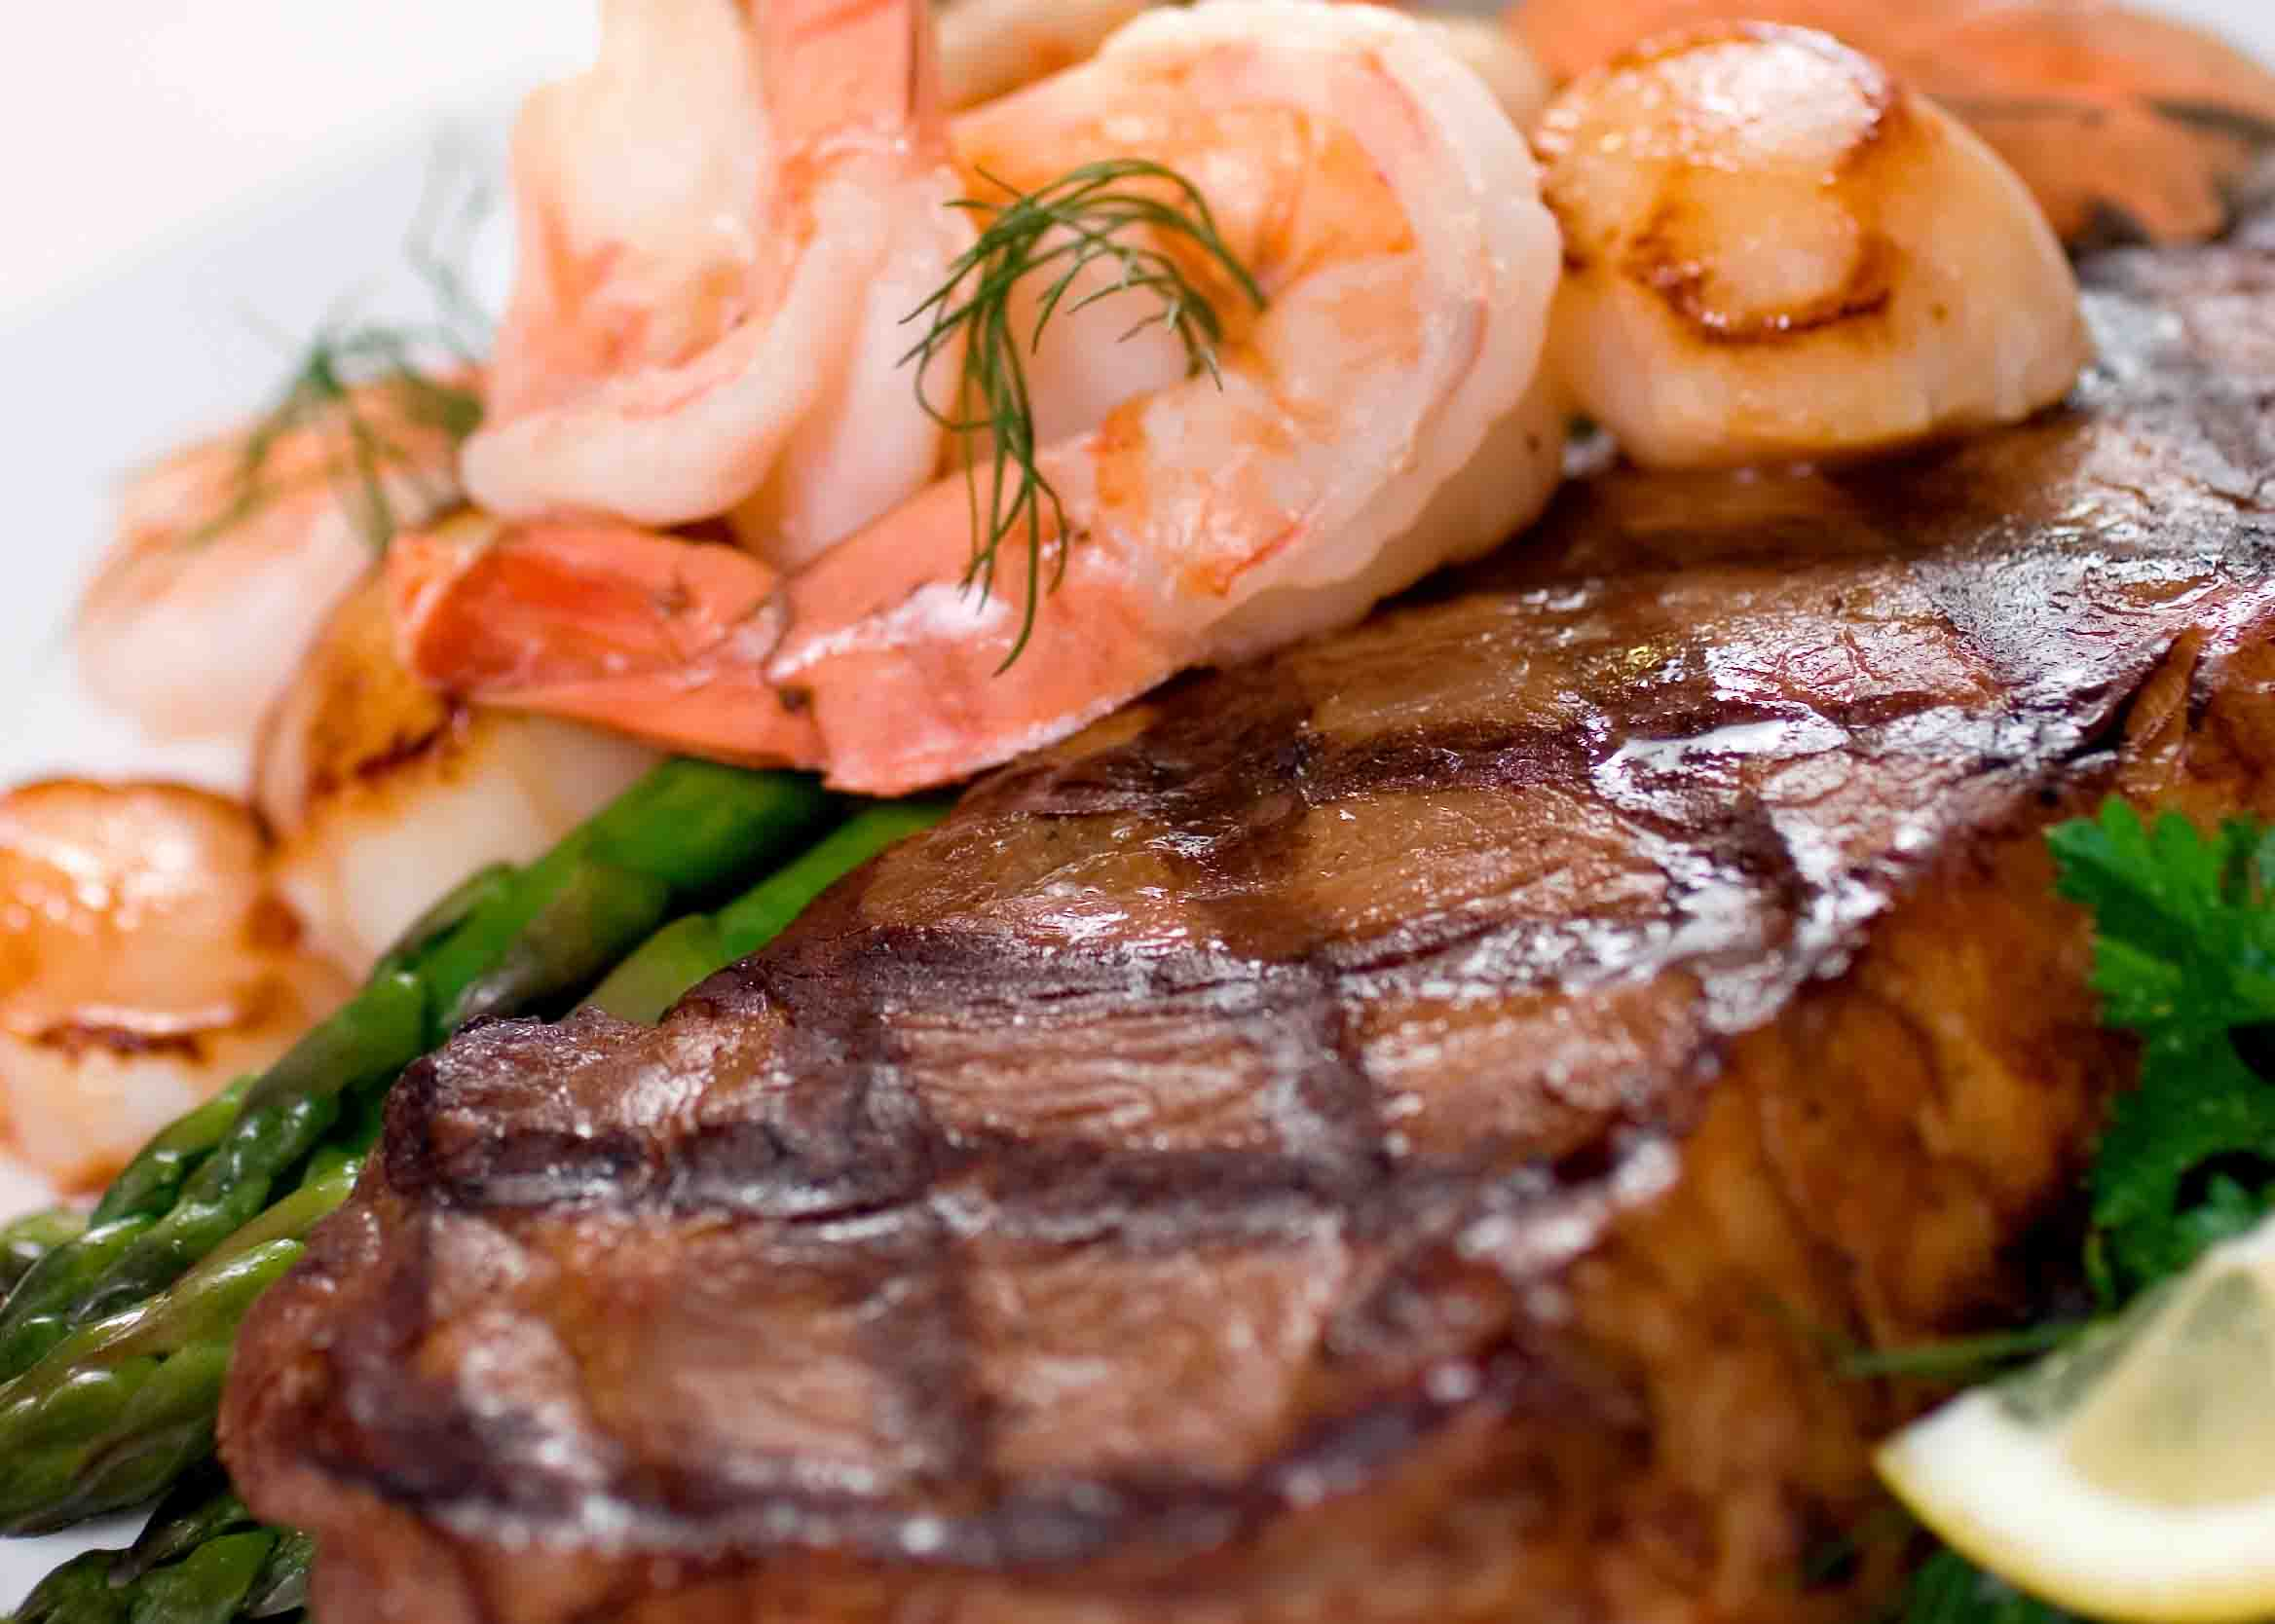 Surf and turf meal